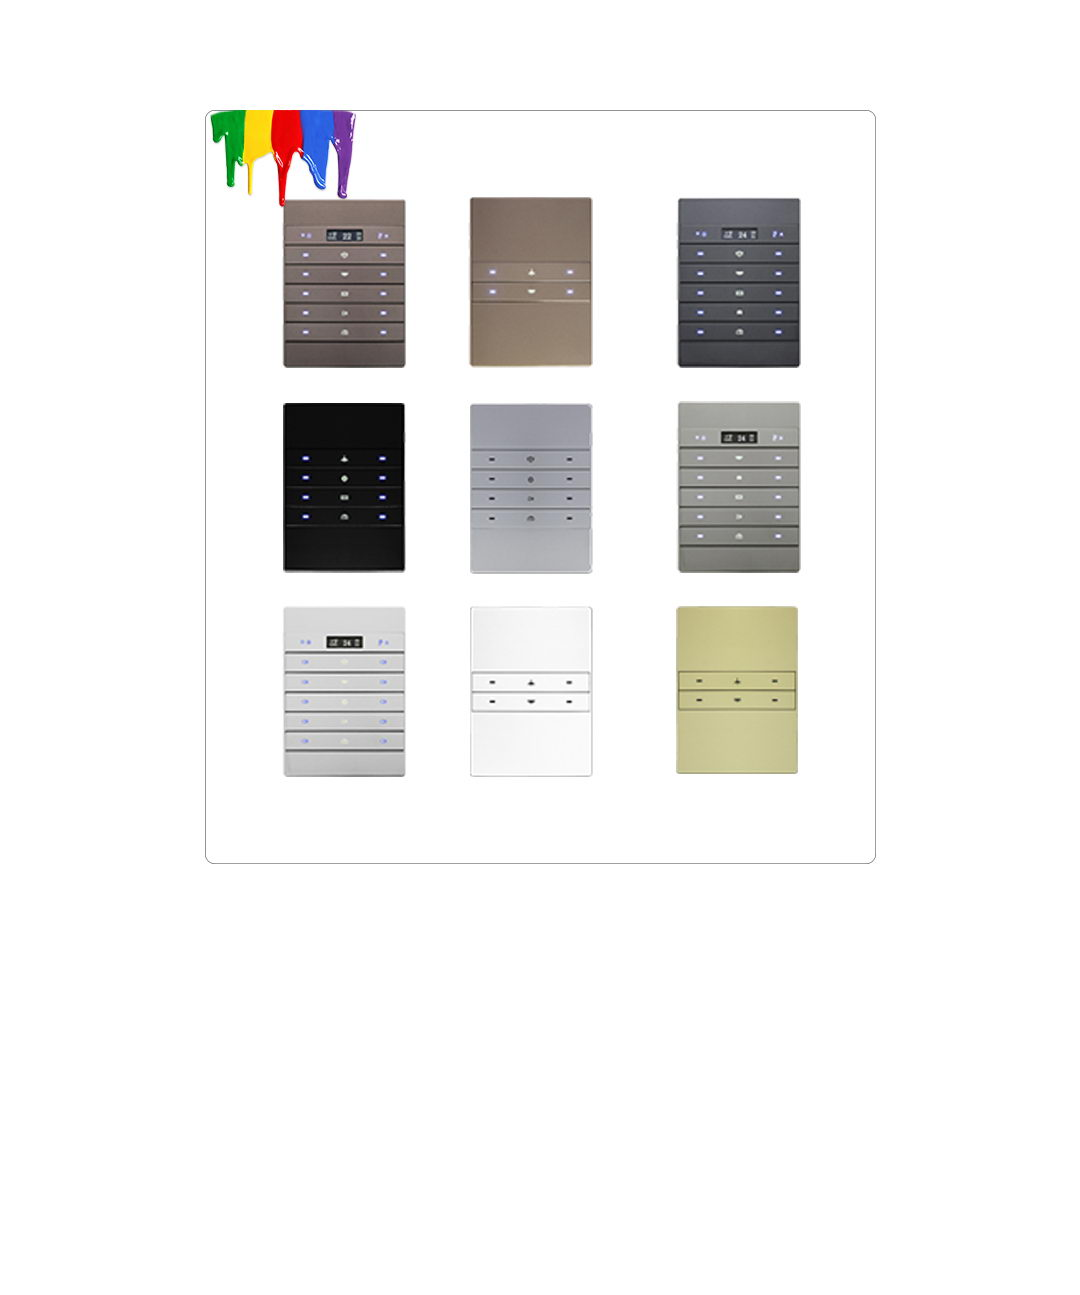 Different wall switch colors like silver champagne , black white bronze and more